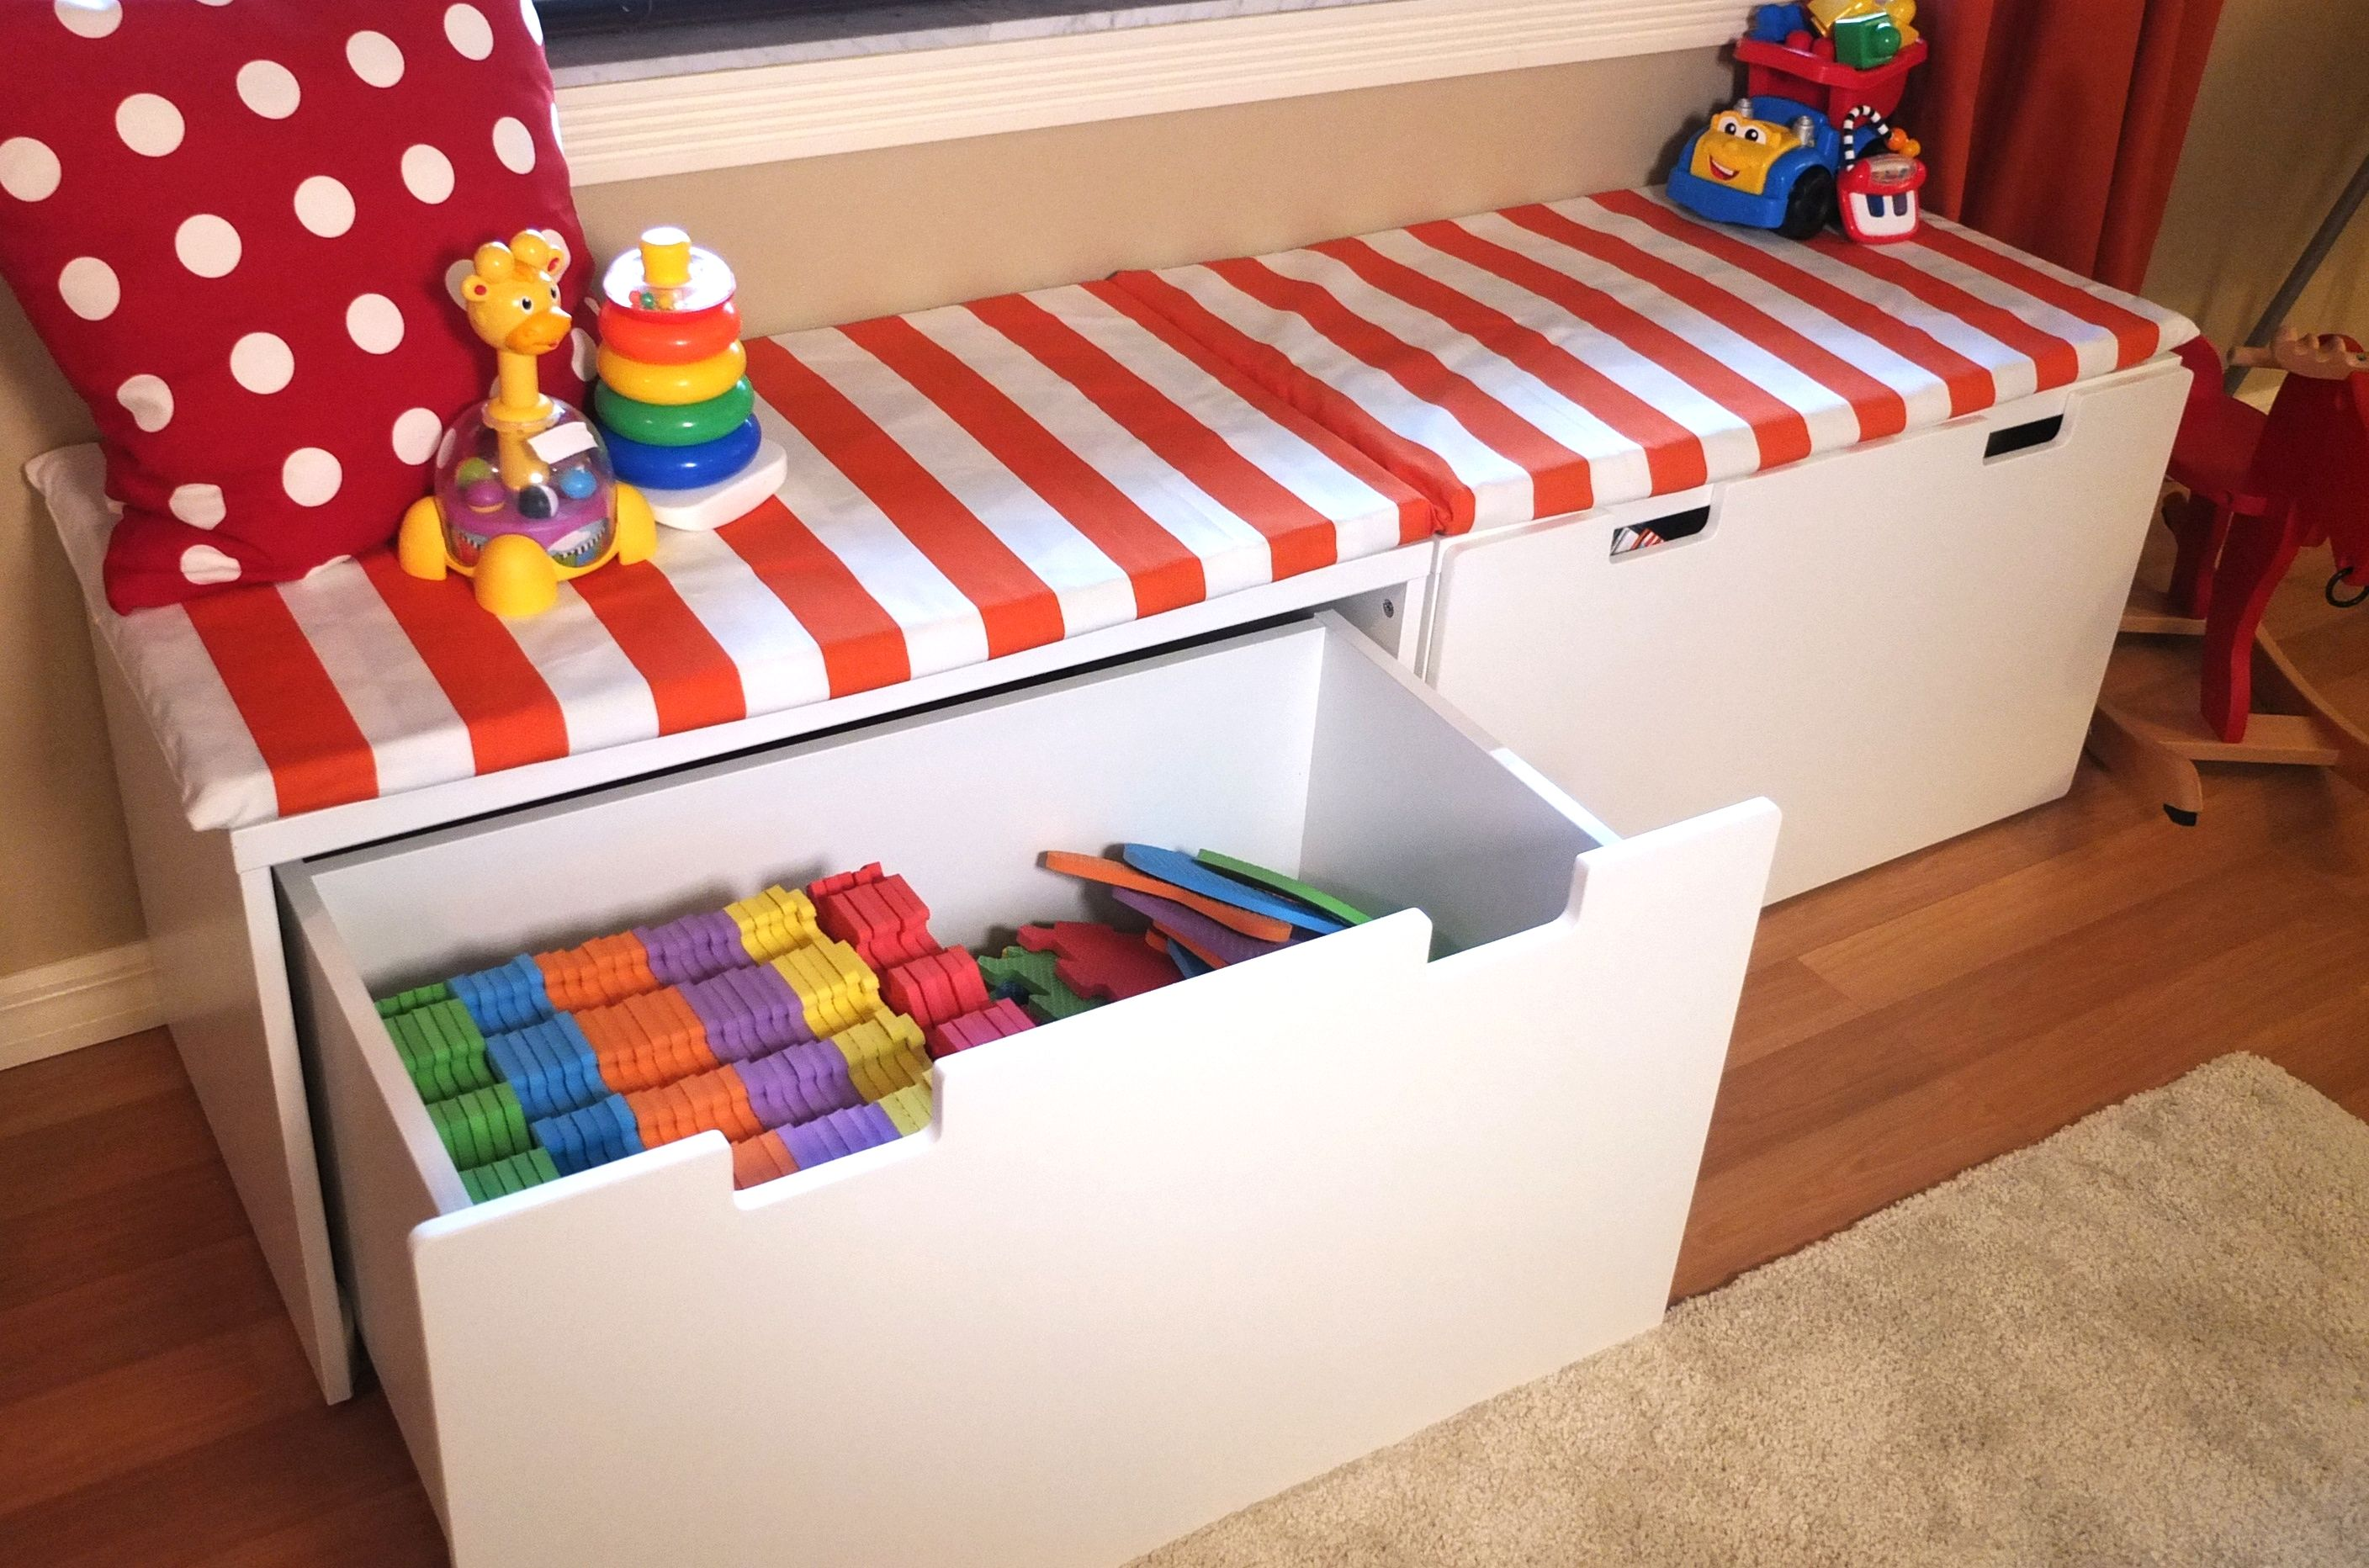 children gb childrens products bench with ikea spr fritids stuva toy en system cm storage white